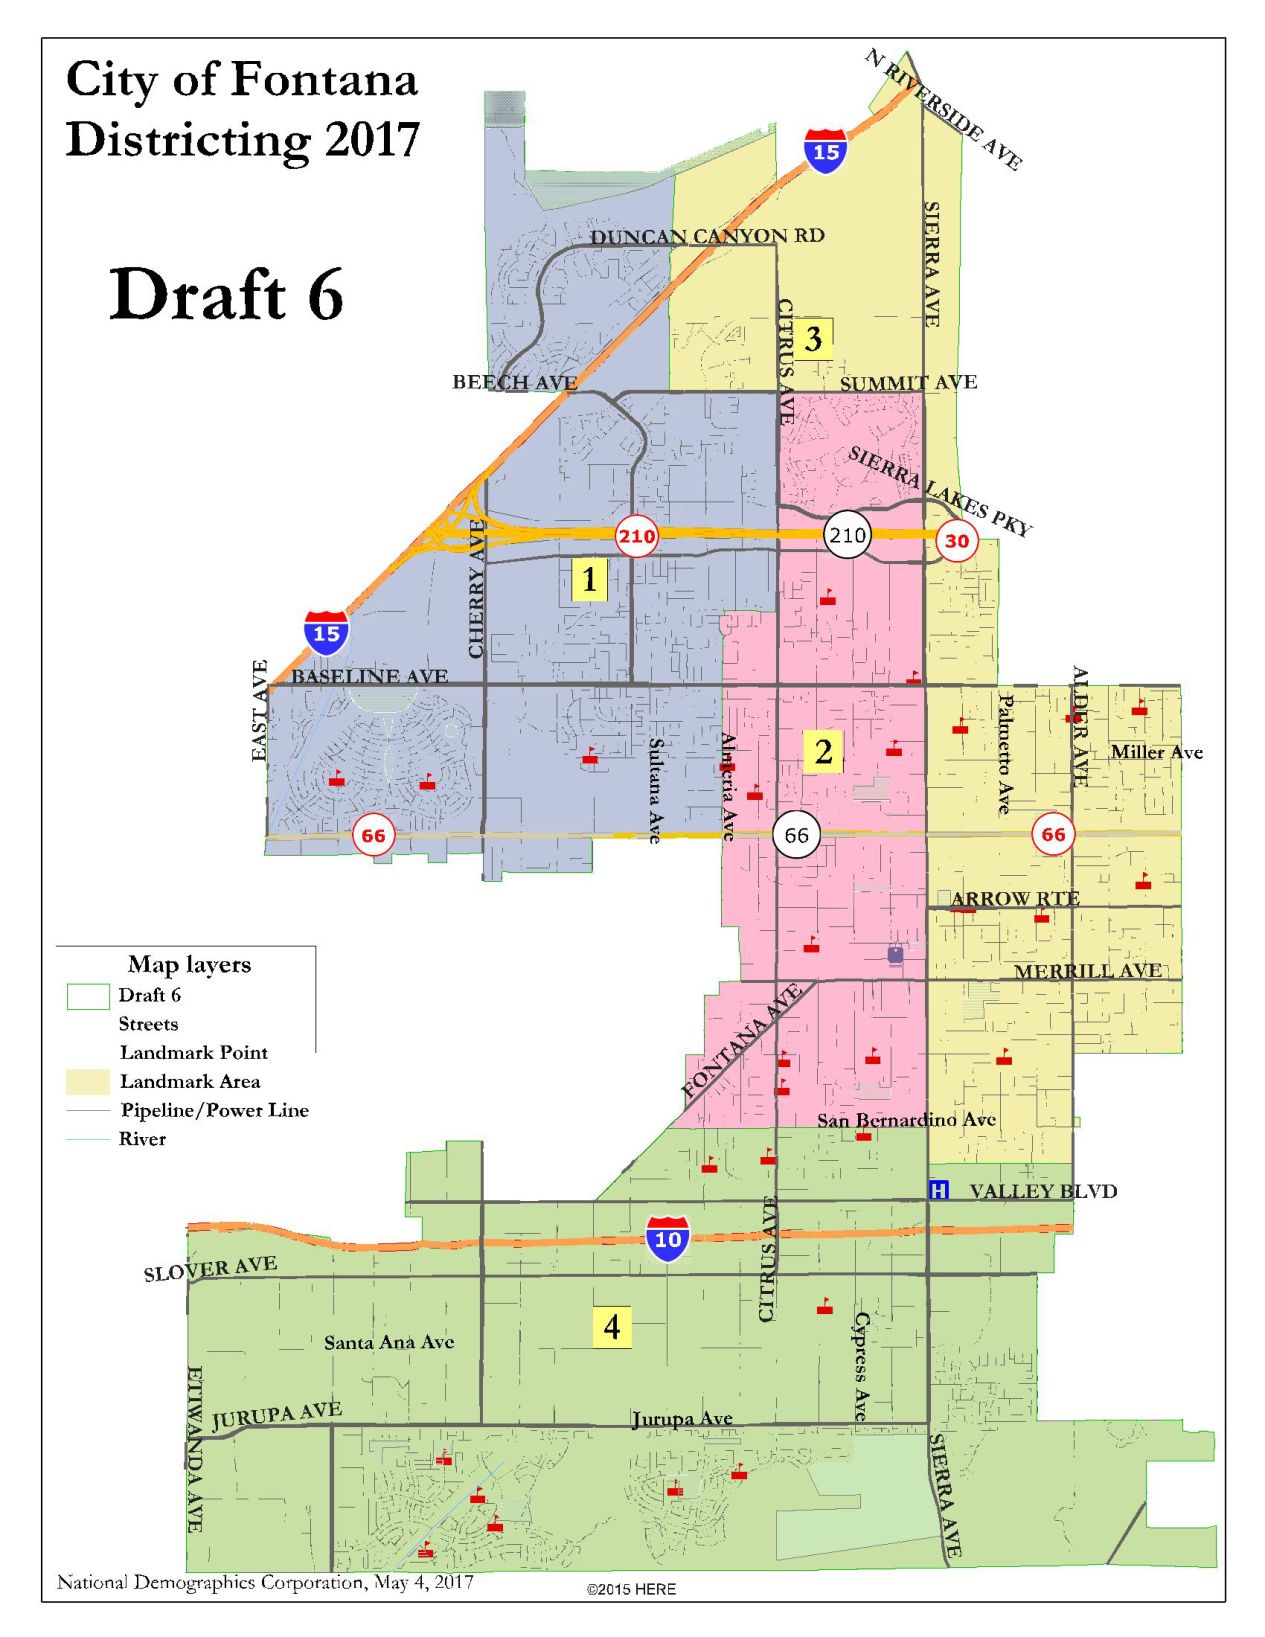 Fontana City Council decides on Draft 6 as the map to be used in